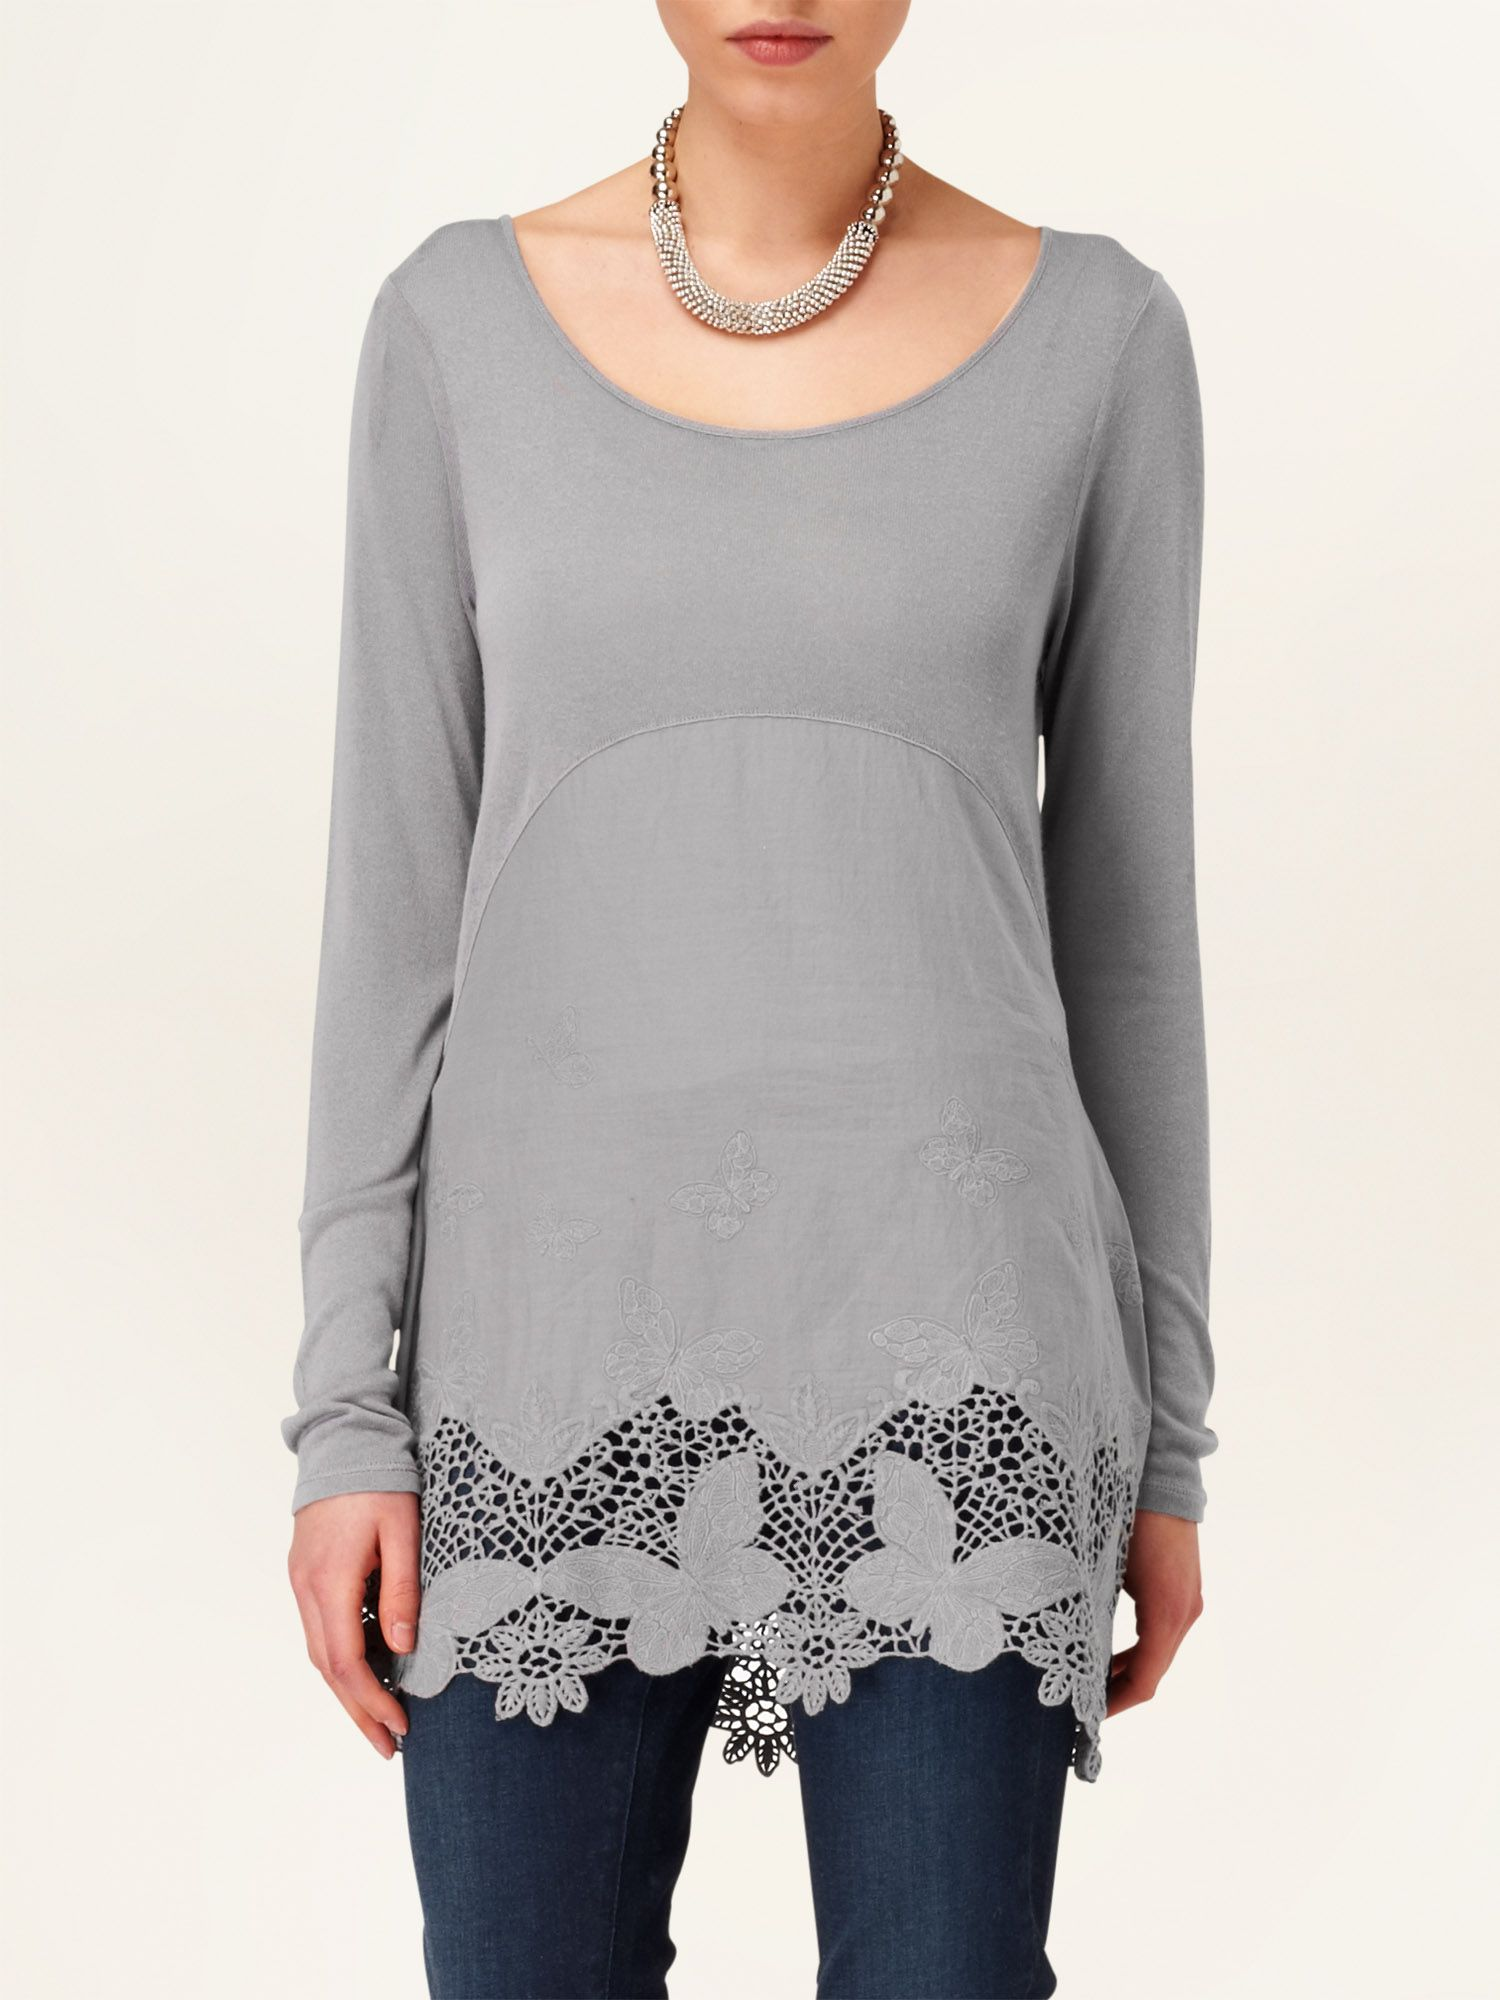 Butterfly faith top